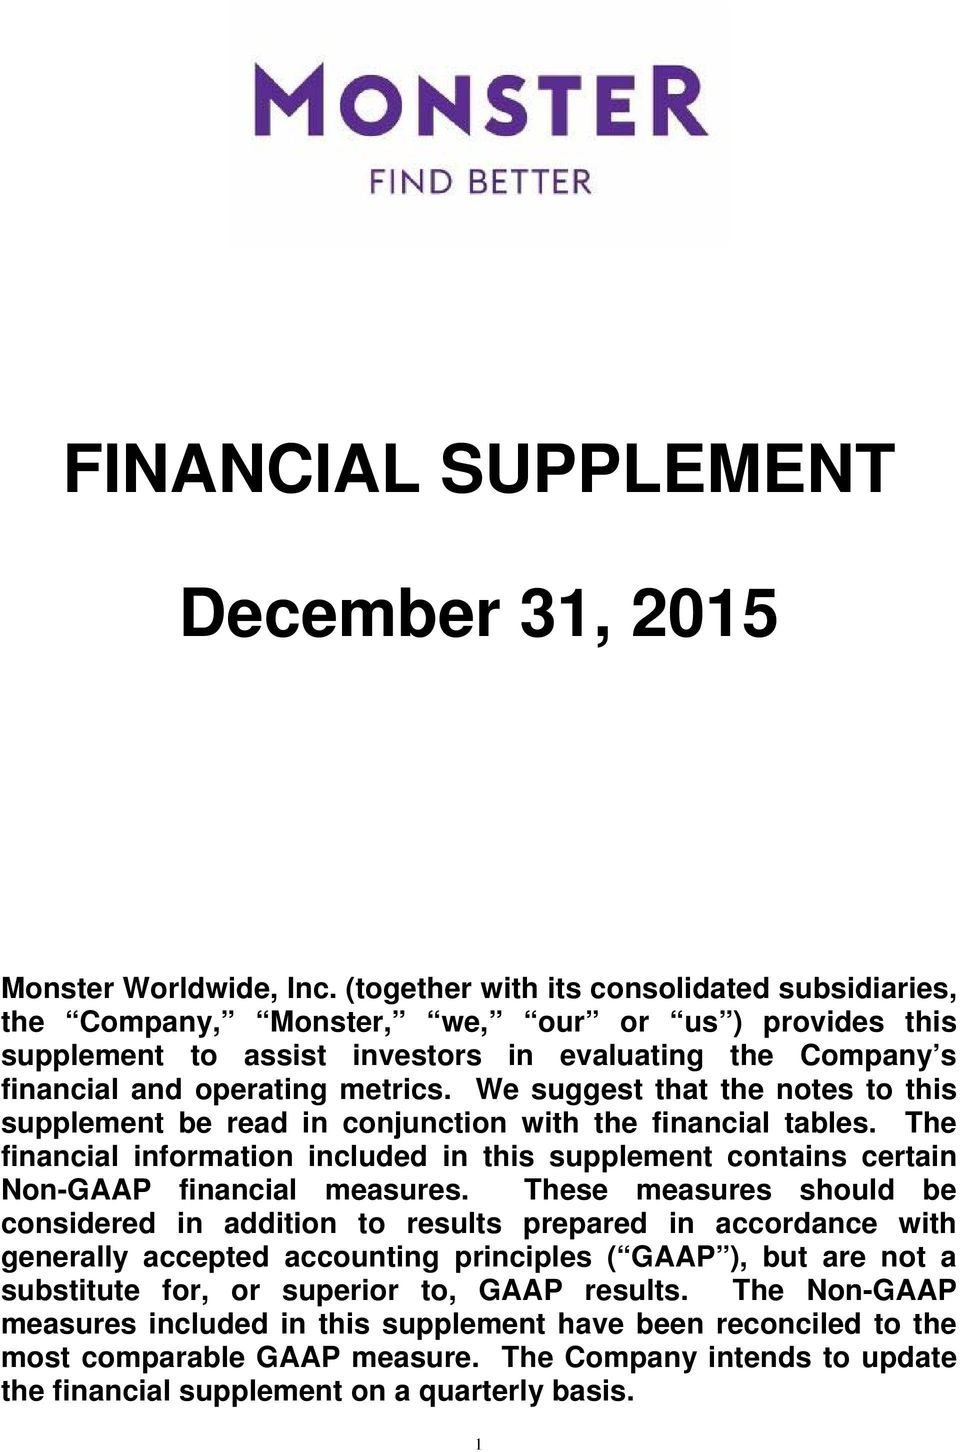 We suggest that the notes to this supplement be read in conjunction with the financial tables. The financial information included in this supplement contains certain Non-GAAP financial measures.